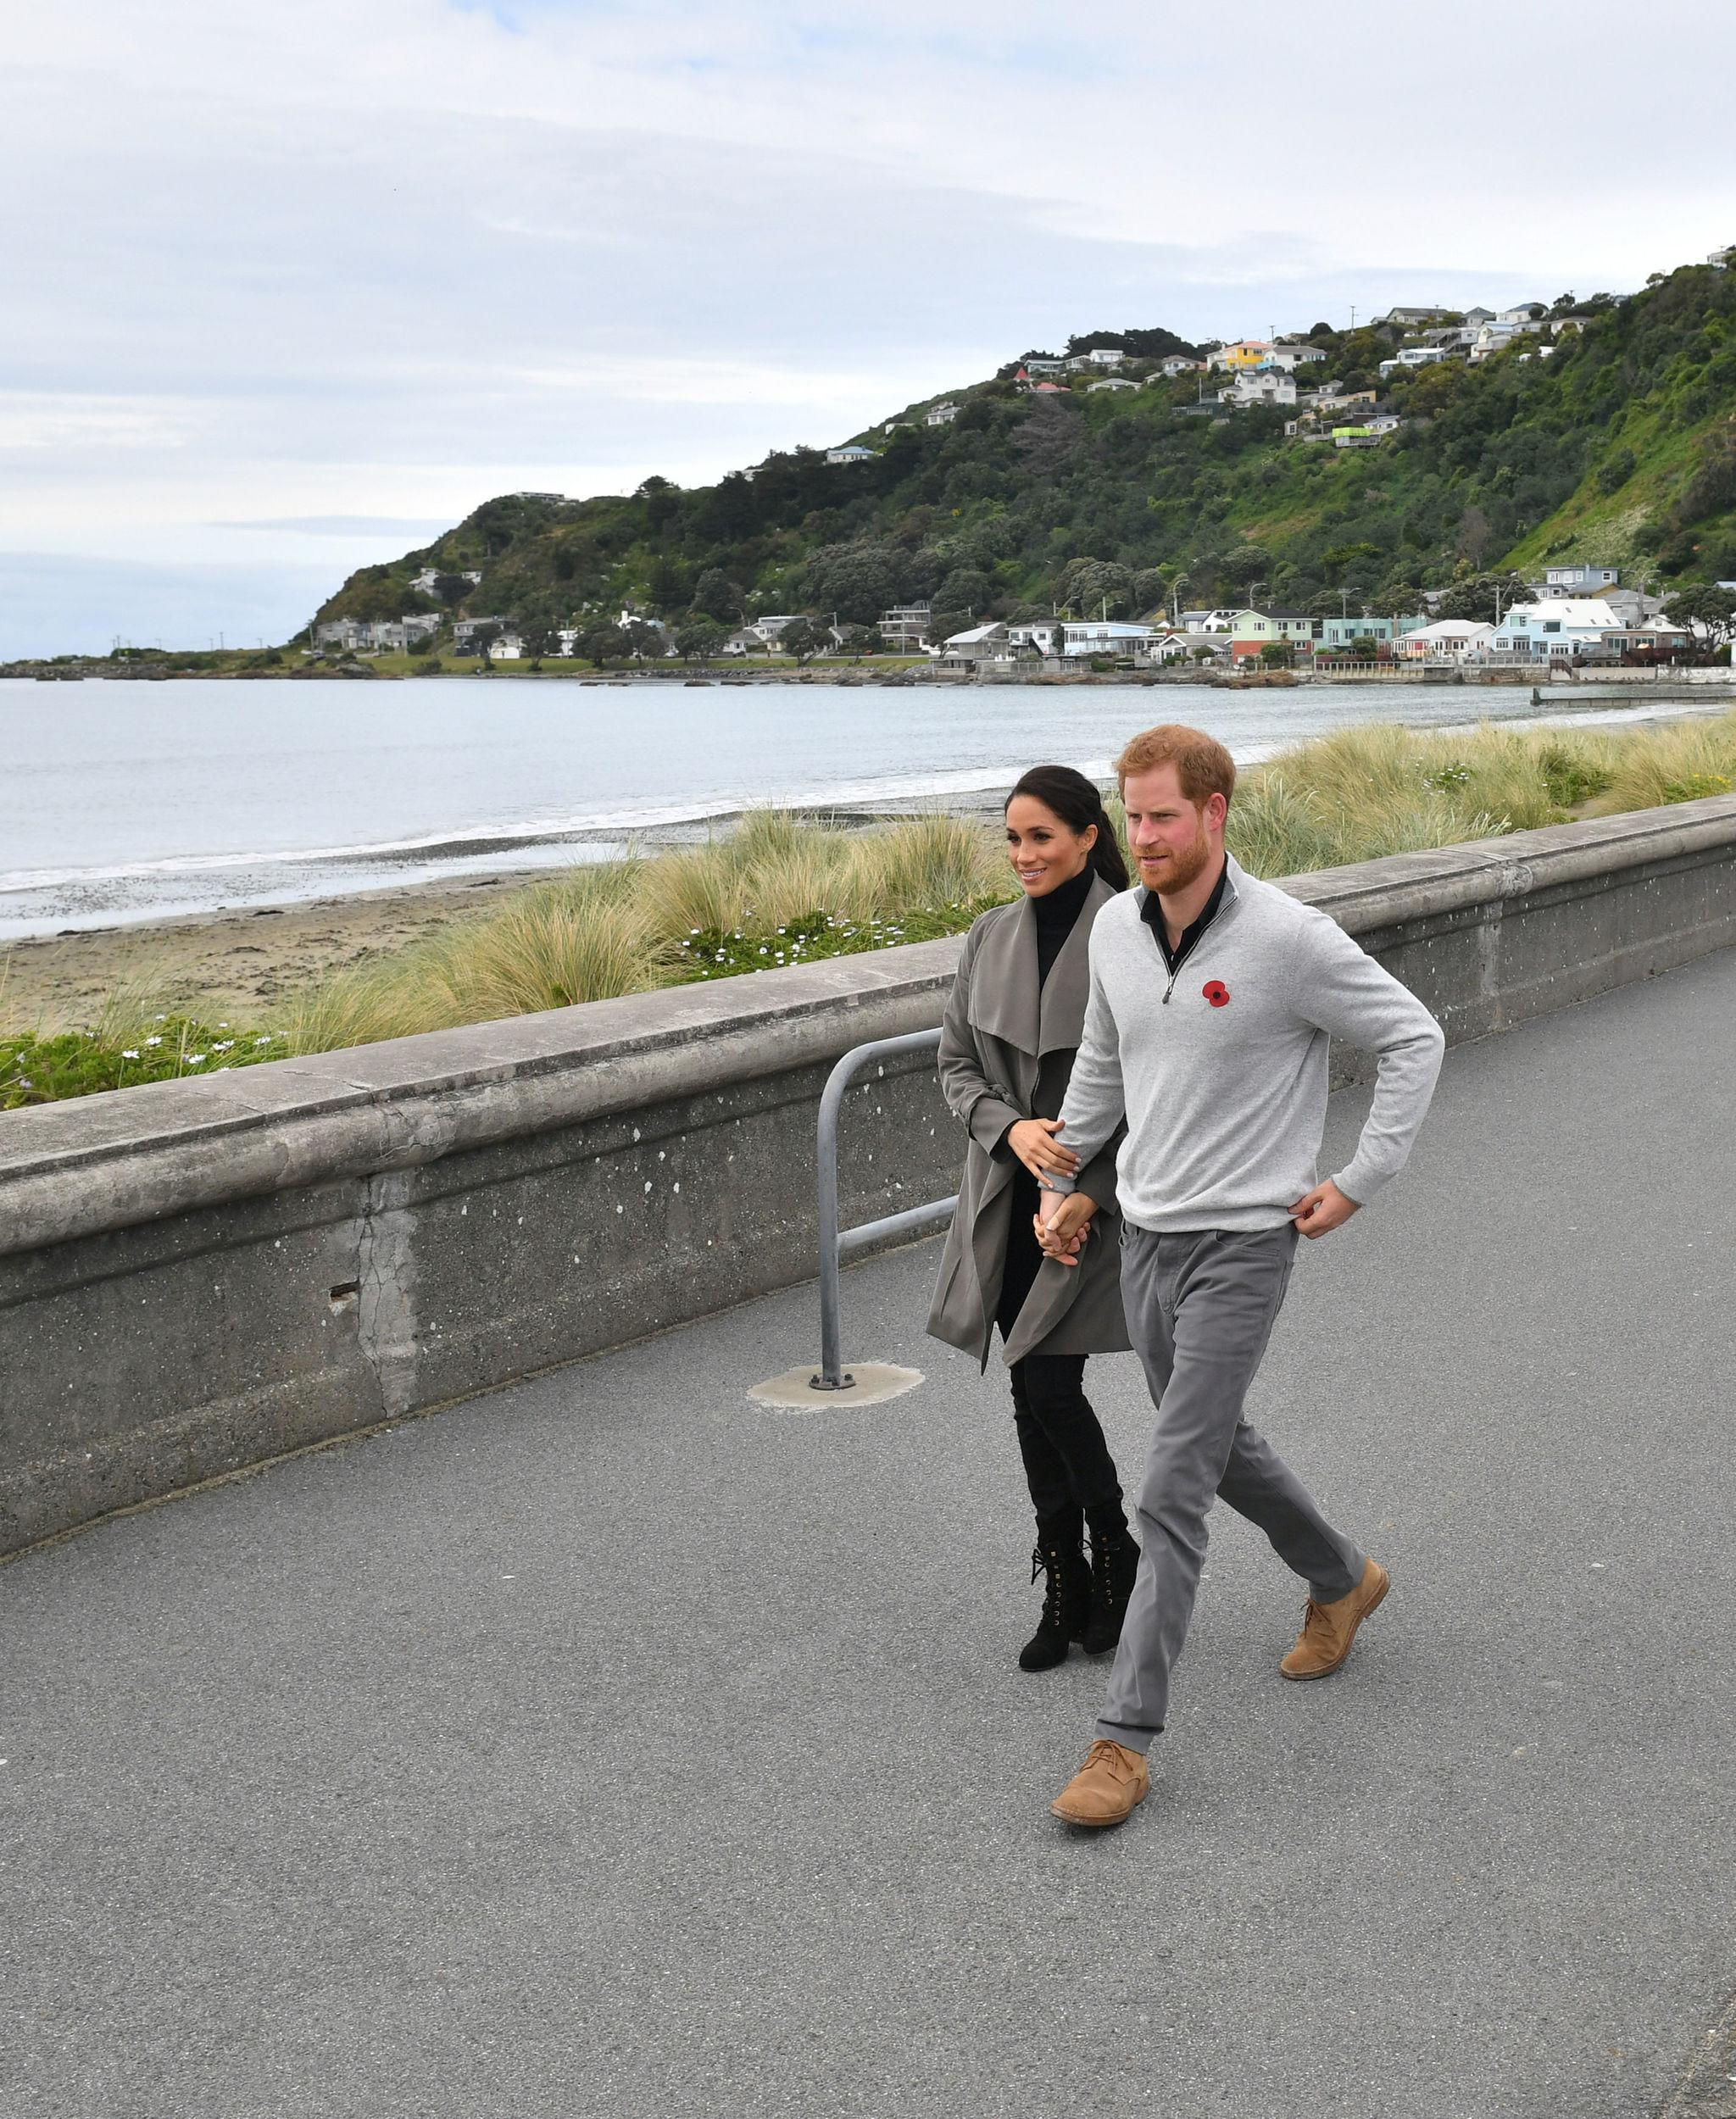 The Duke and Duchess of Sussex, ahead of meeting with young people in the mental health sector at the Wellington Cafe, Wellington, New Zealand.